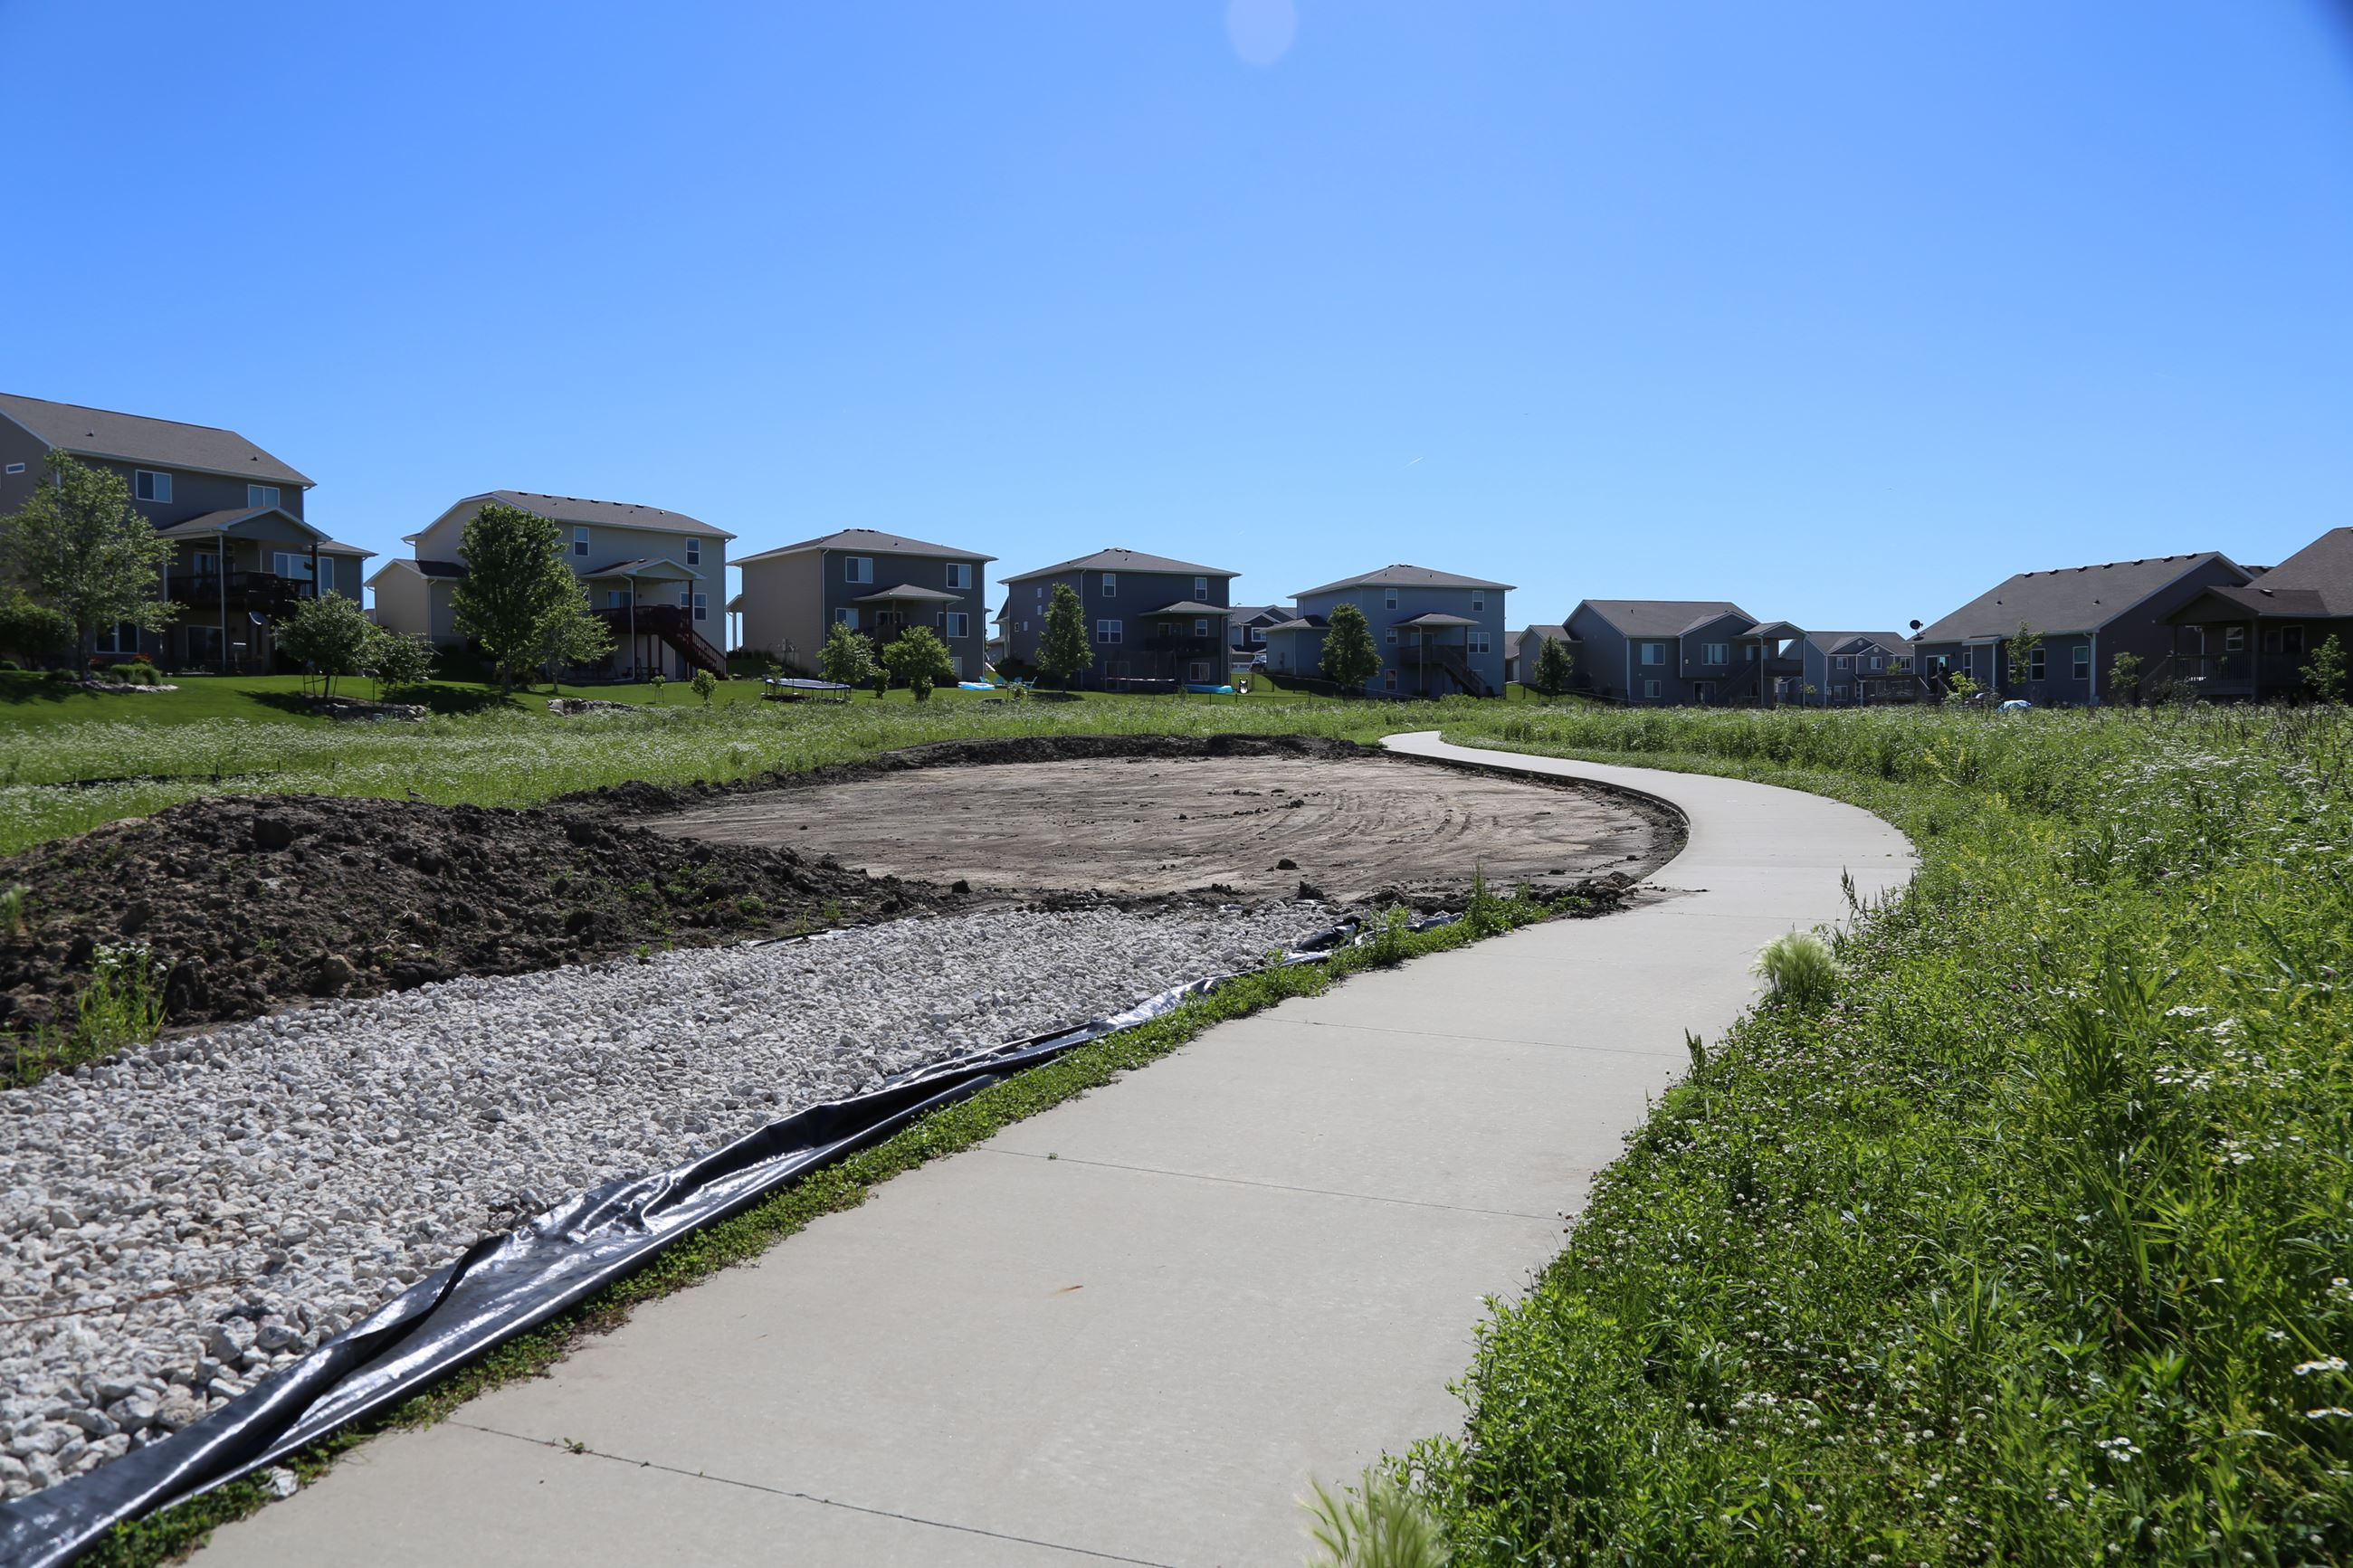 Glynn Village Trailside Amenity construction site situated just off of the bike trail